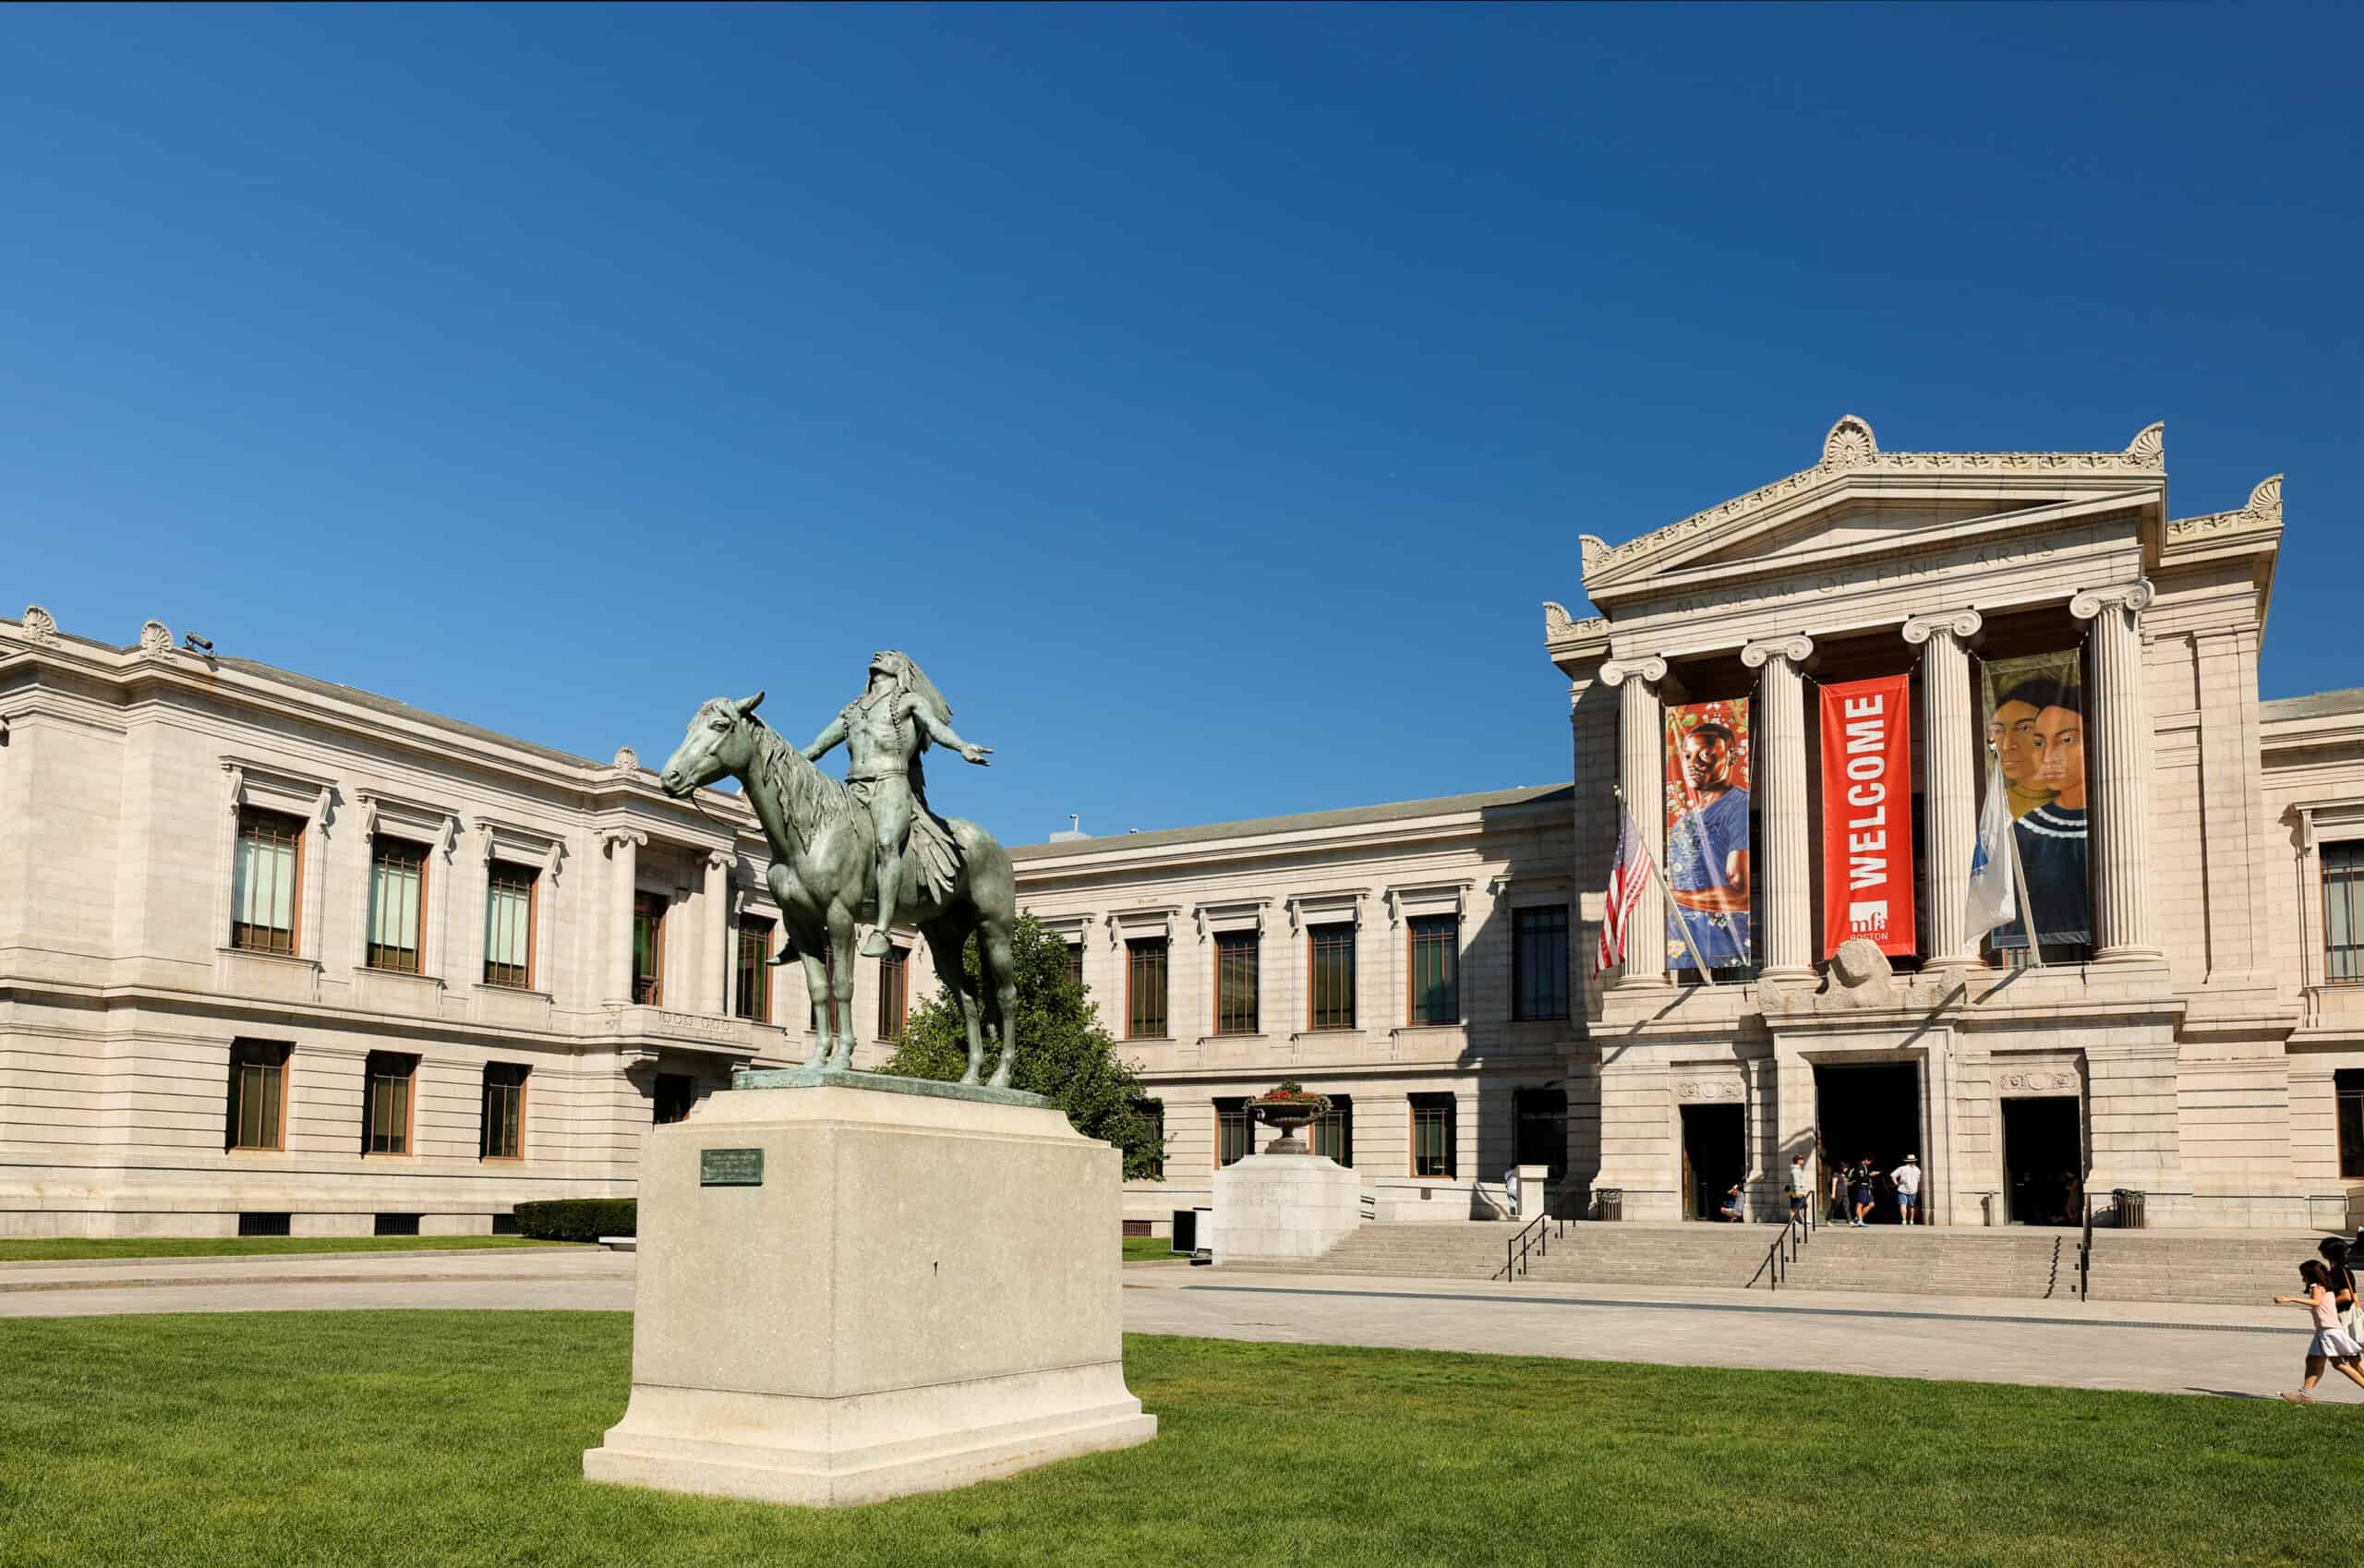 Historic museum with horse statue, best museums in Boston